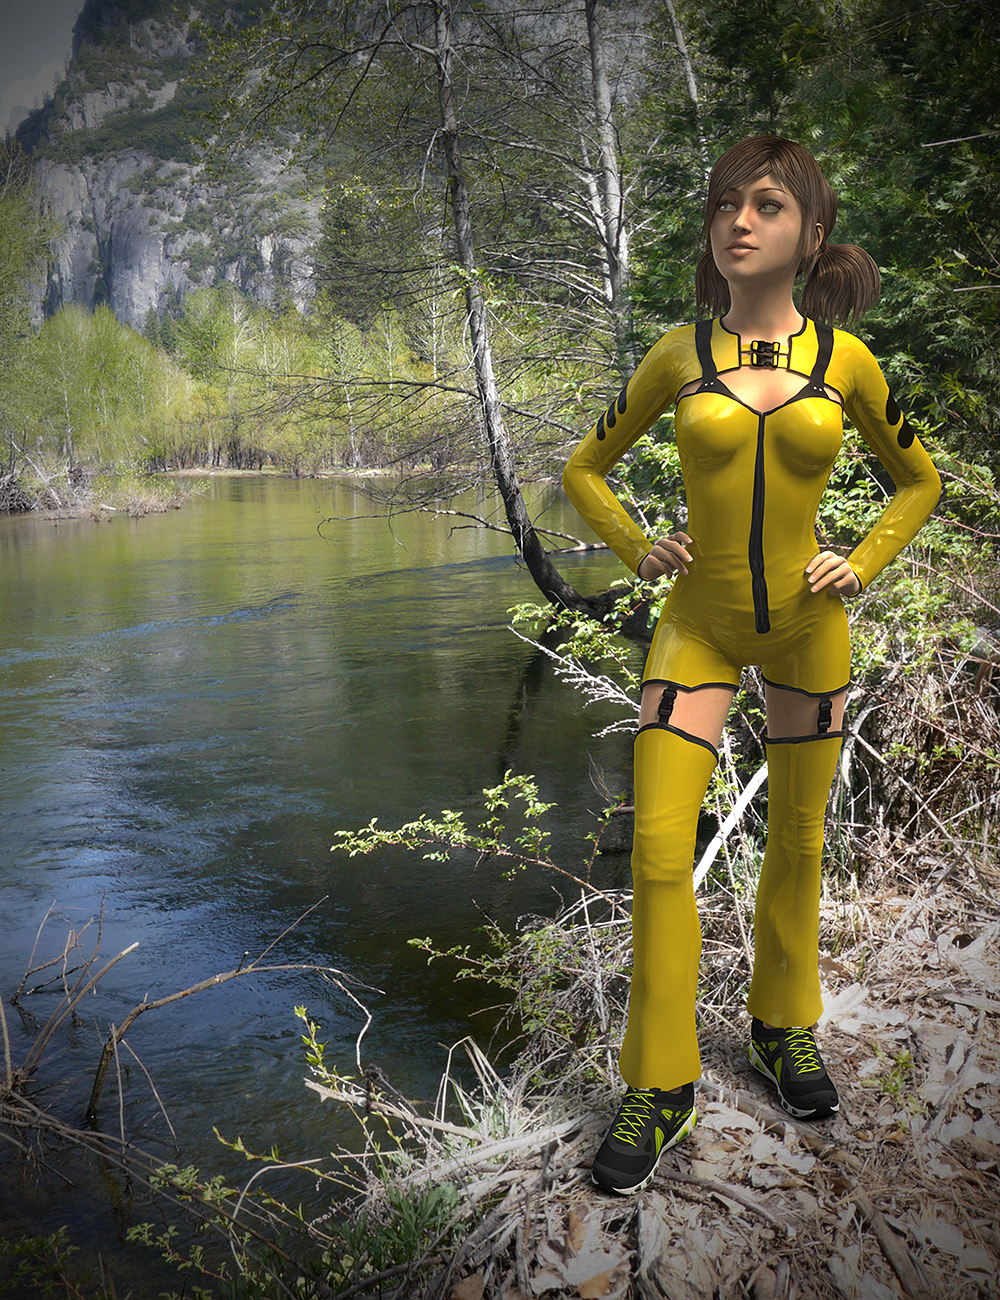 HDR ProSets Yosemite Pack One by: DimensionTheory, 3D Models by Daz 3D